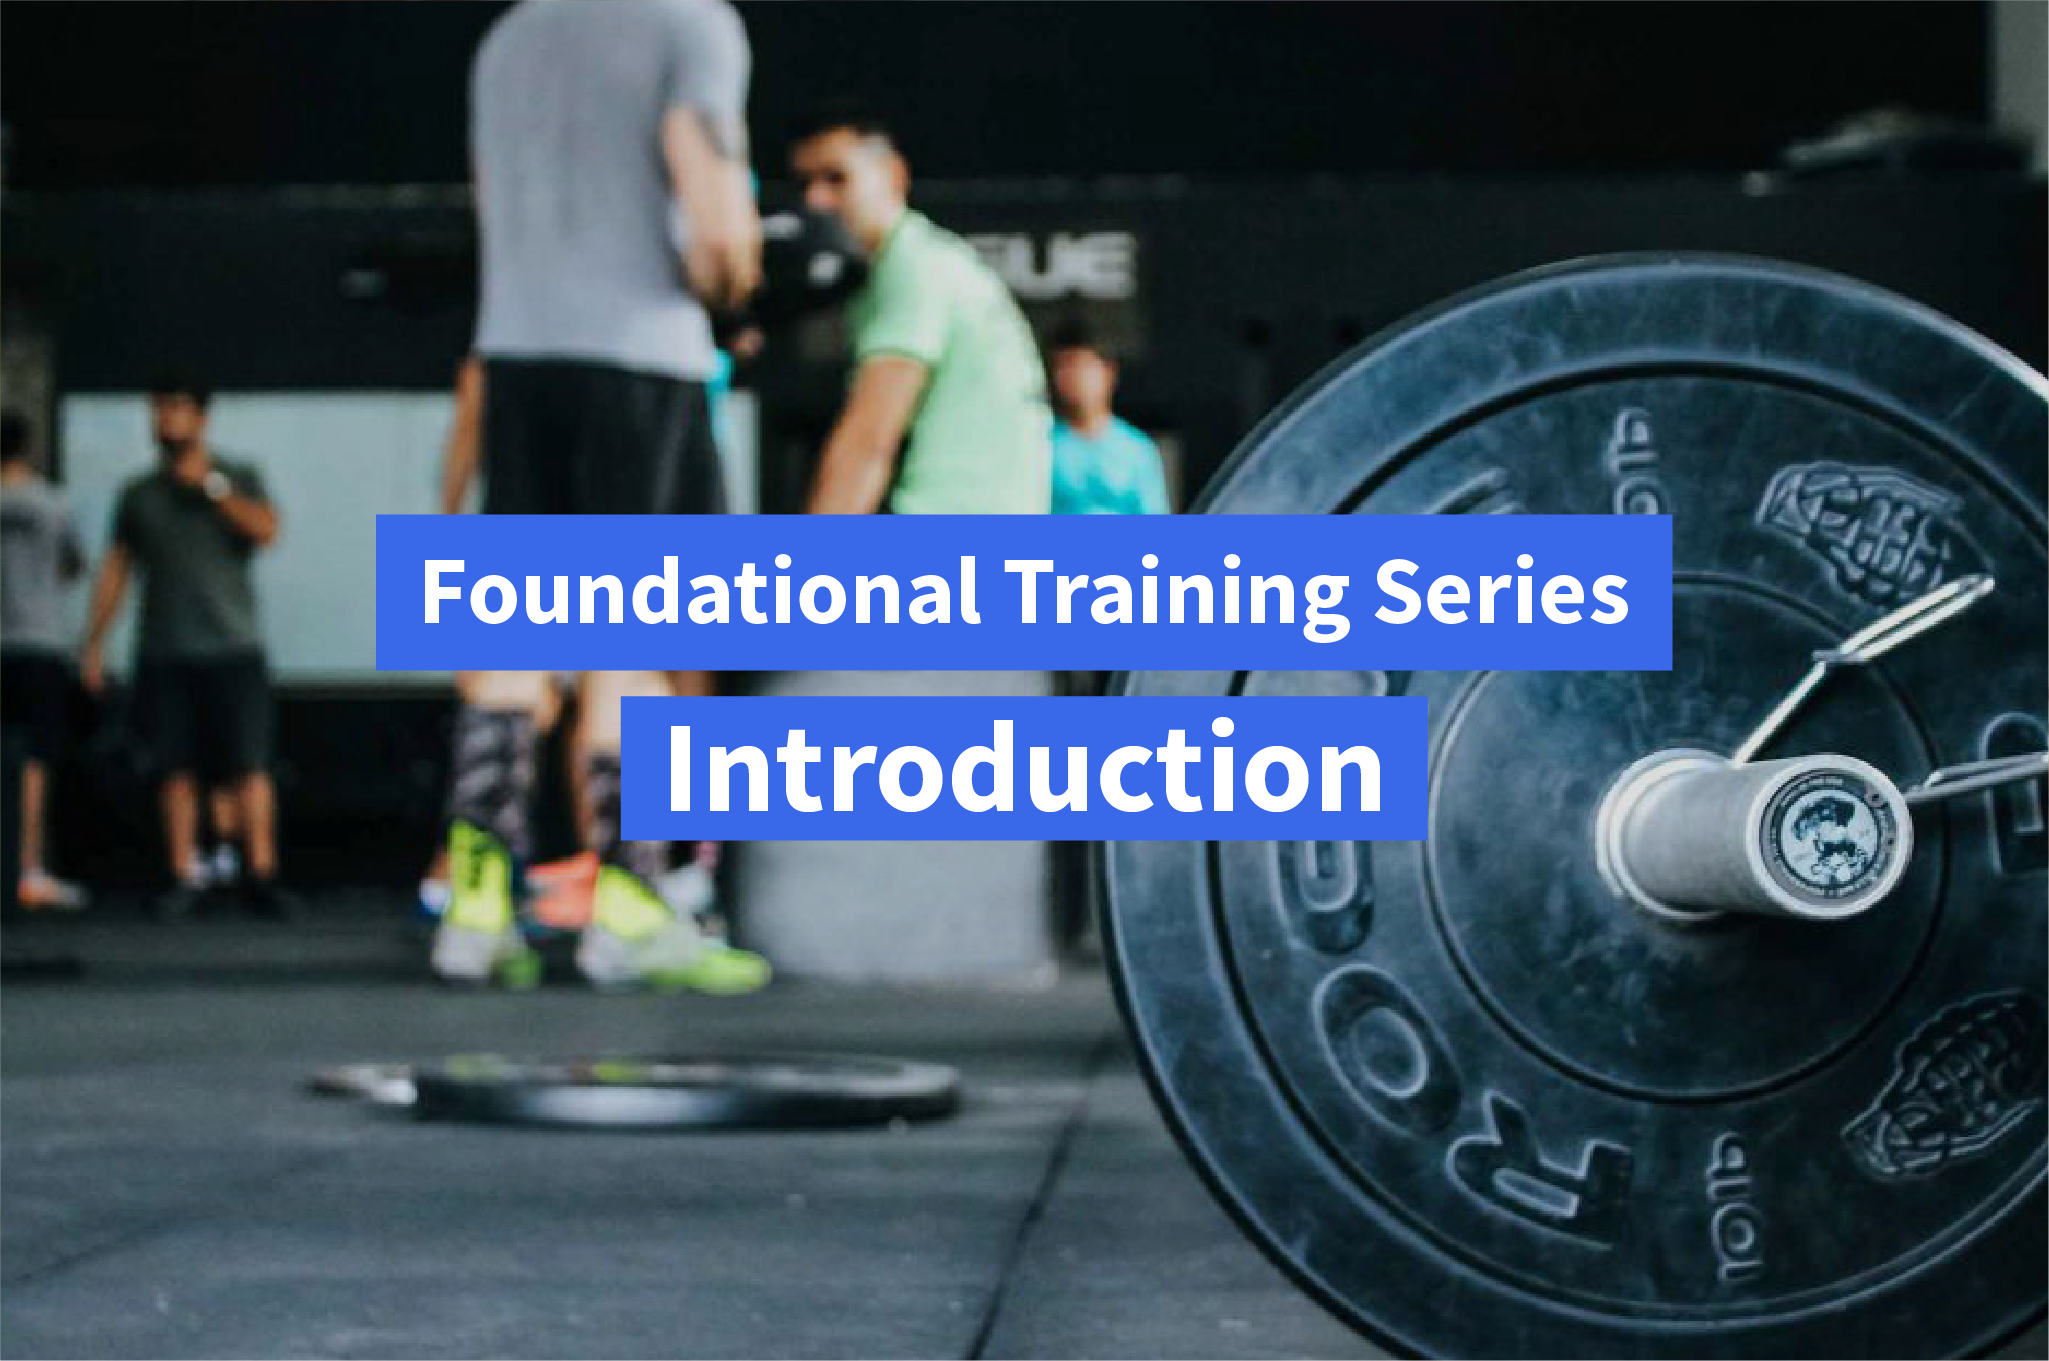 Foundational Training Series: Your Guide to Optimal Muscle Growth